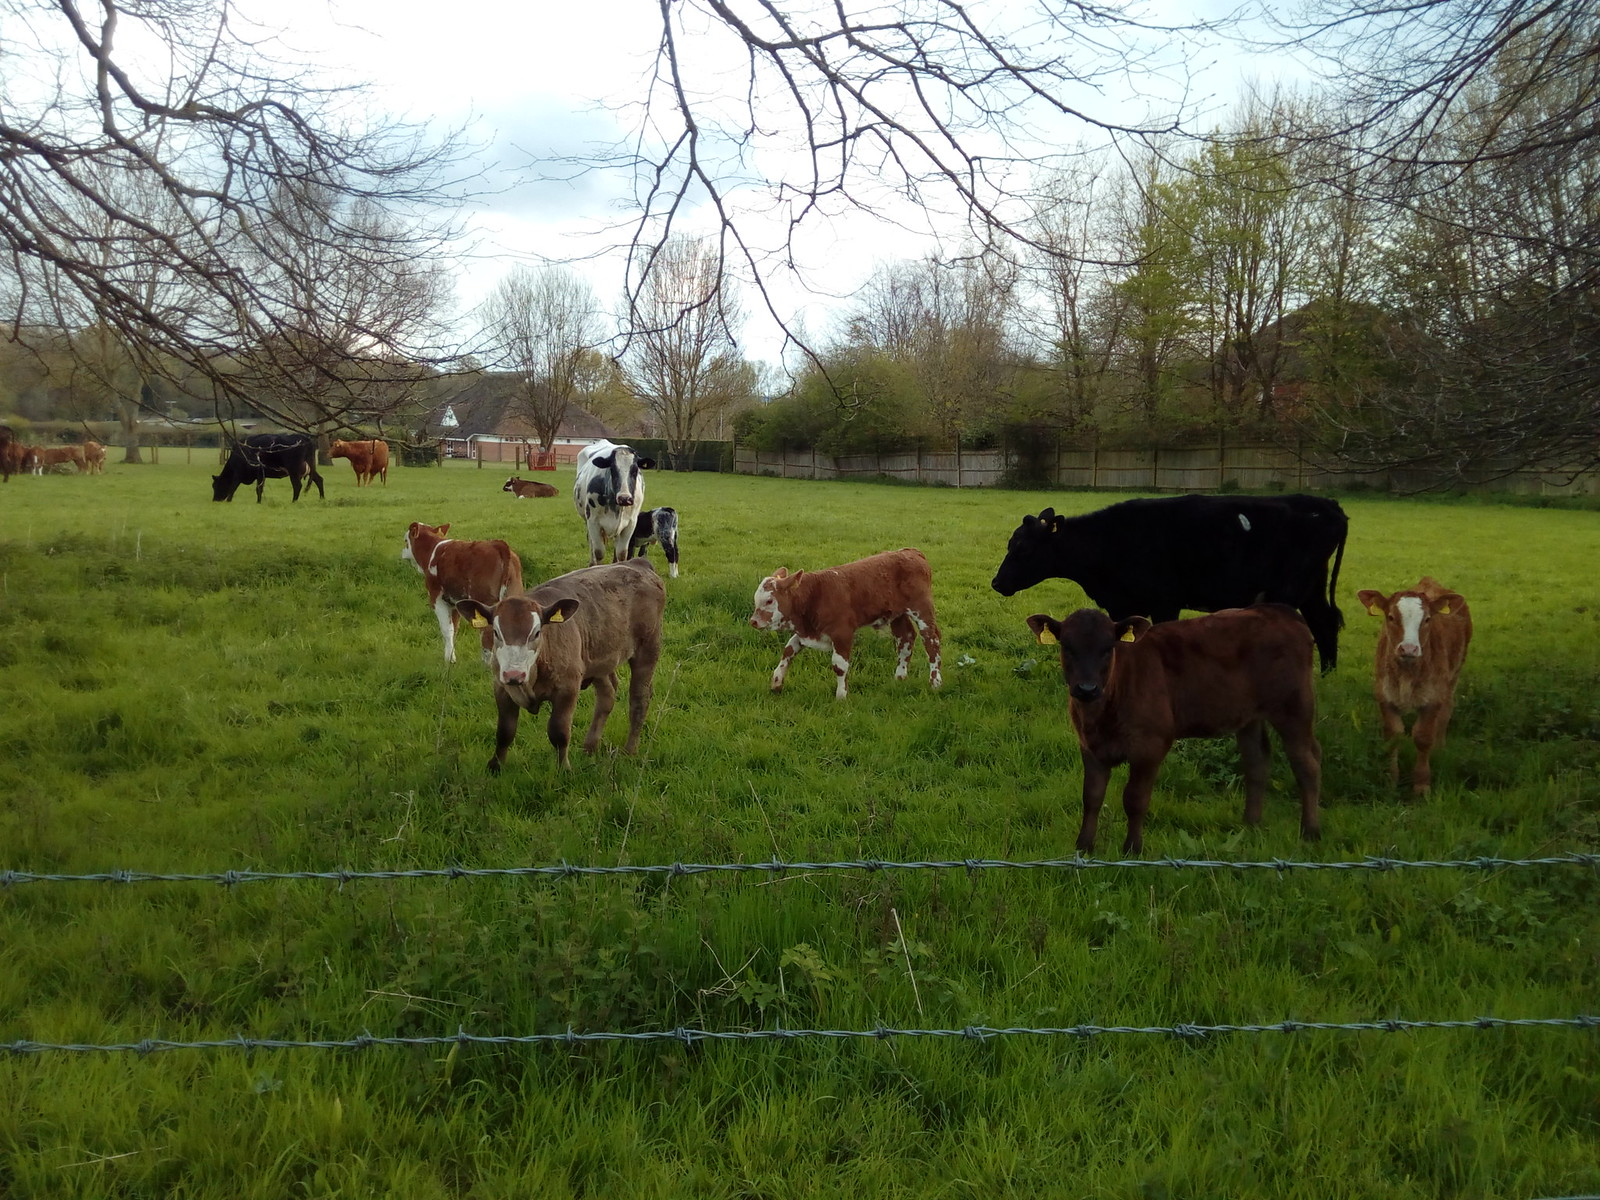 Curious Chilham calves